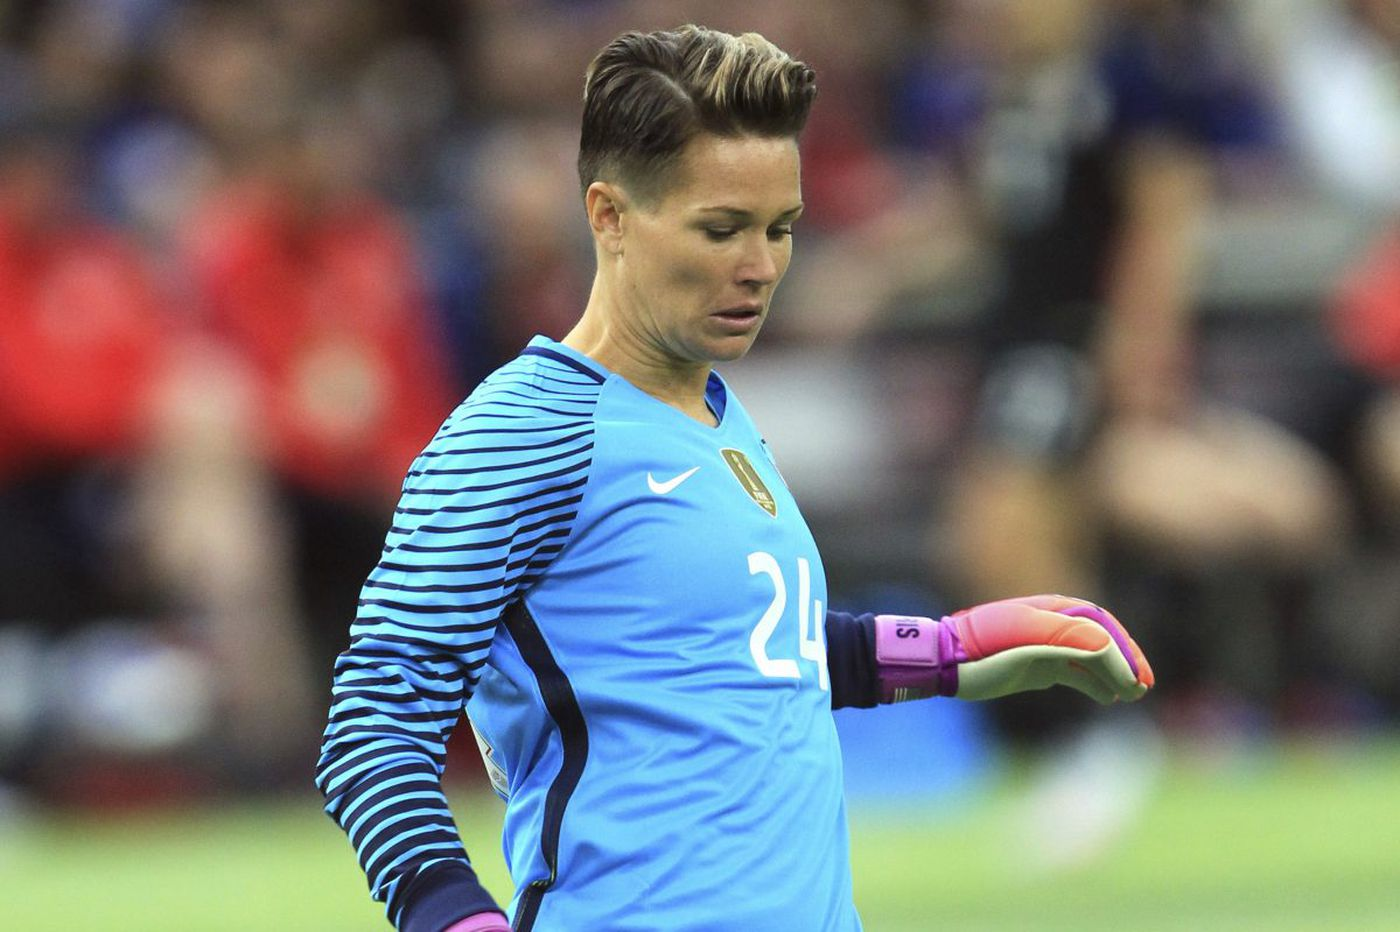 7a93a68c1 U.S. women s soccer team goalkeeper Ashlyn Harris out eight weeks due to quad  injury